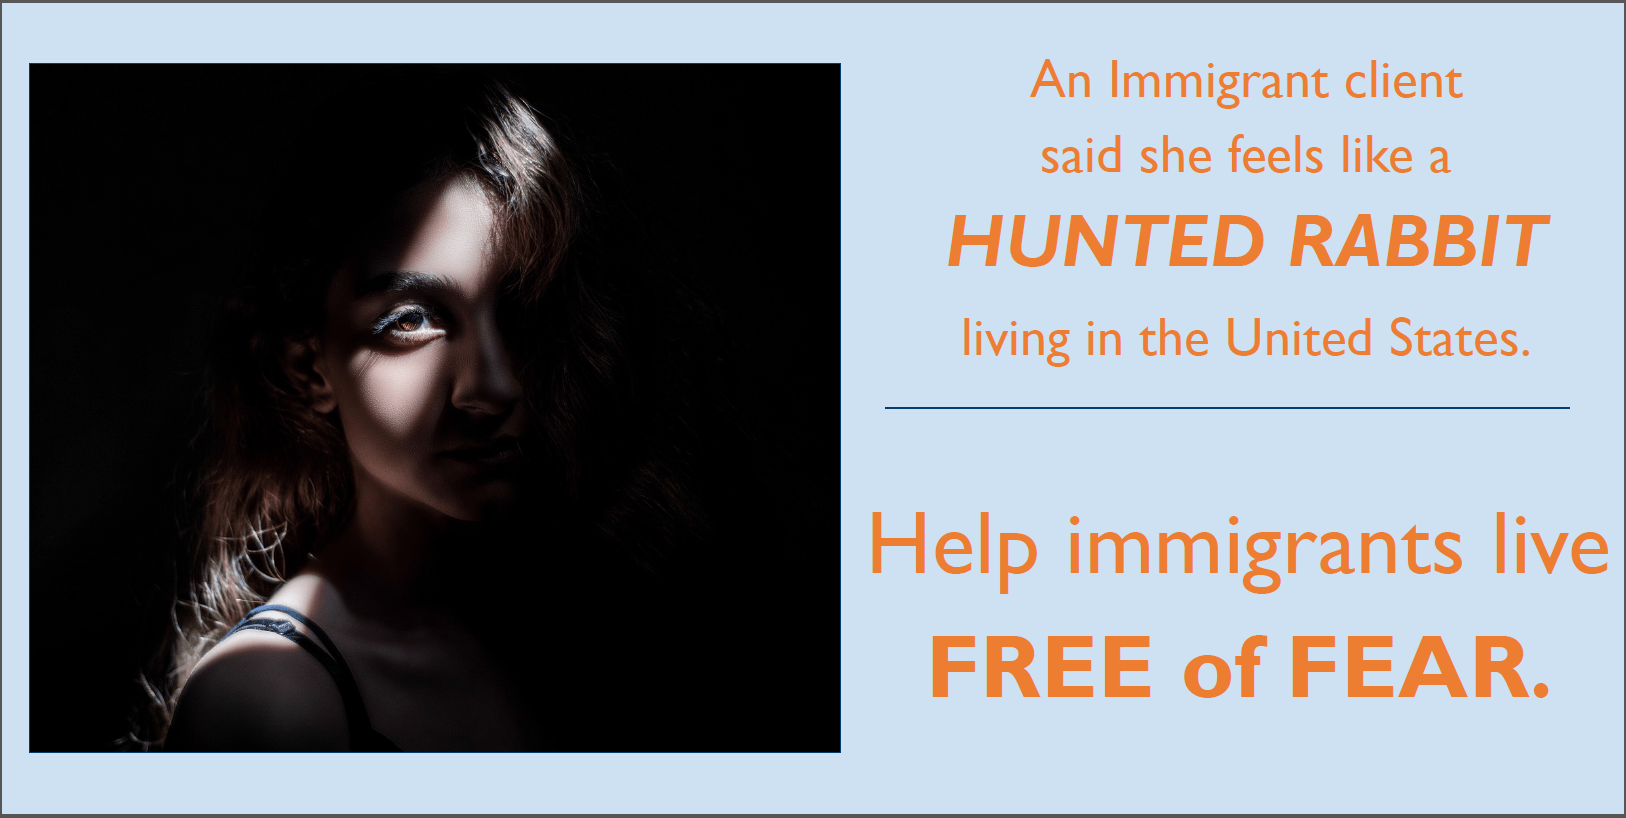 "photo of person in dark with light slanting across face diagonally next to text reading ""An immigrant client says she feels like a HUNTED RABBIT living in the United States. Help immigrants live FREE of FEAR"" in orange text"